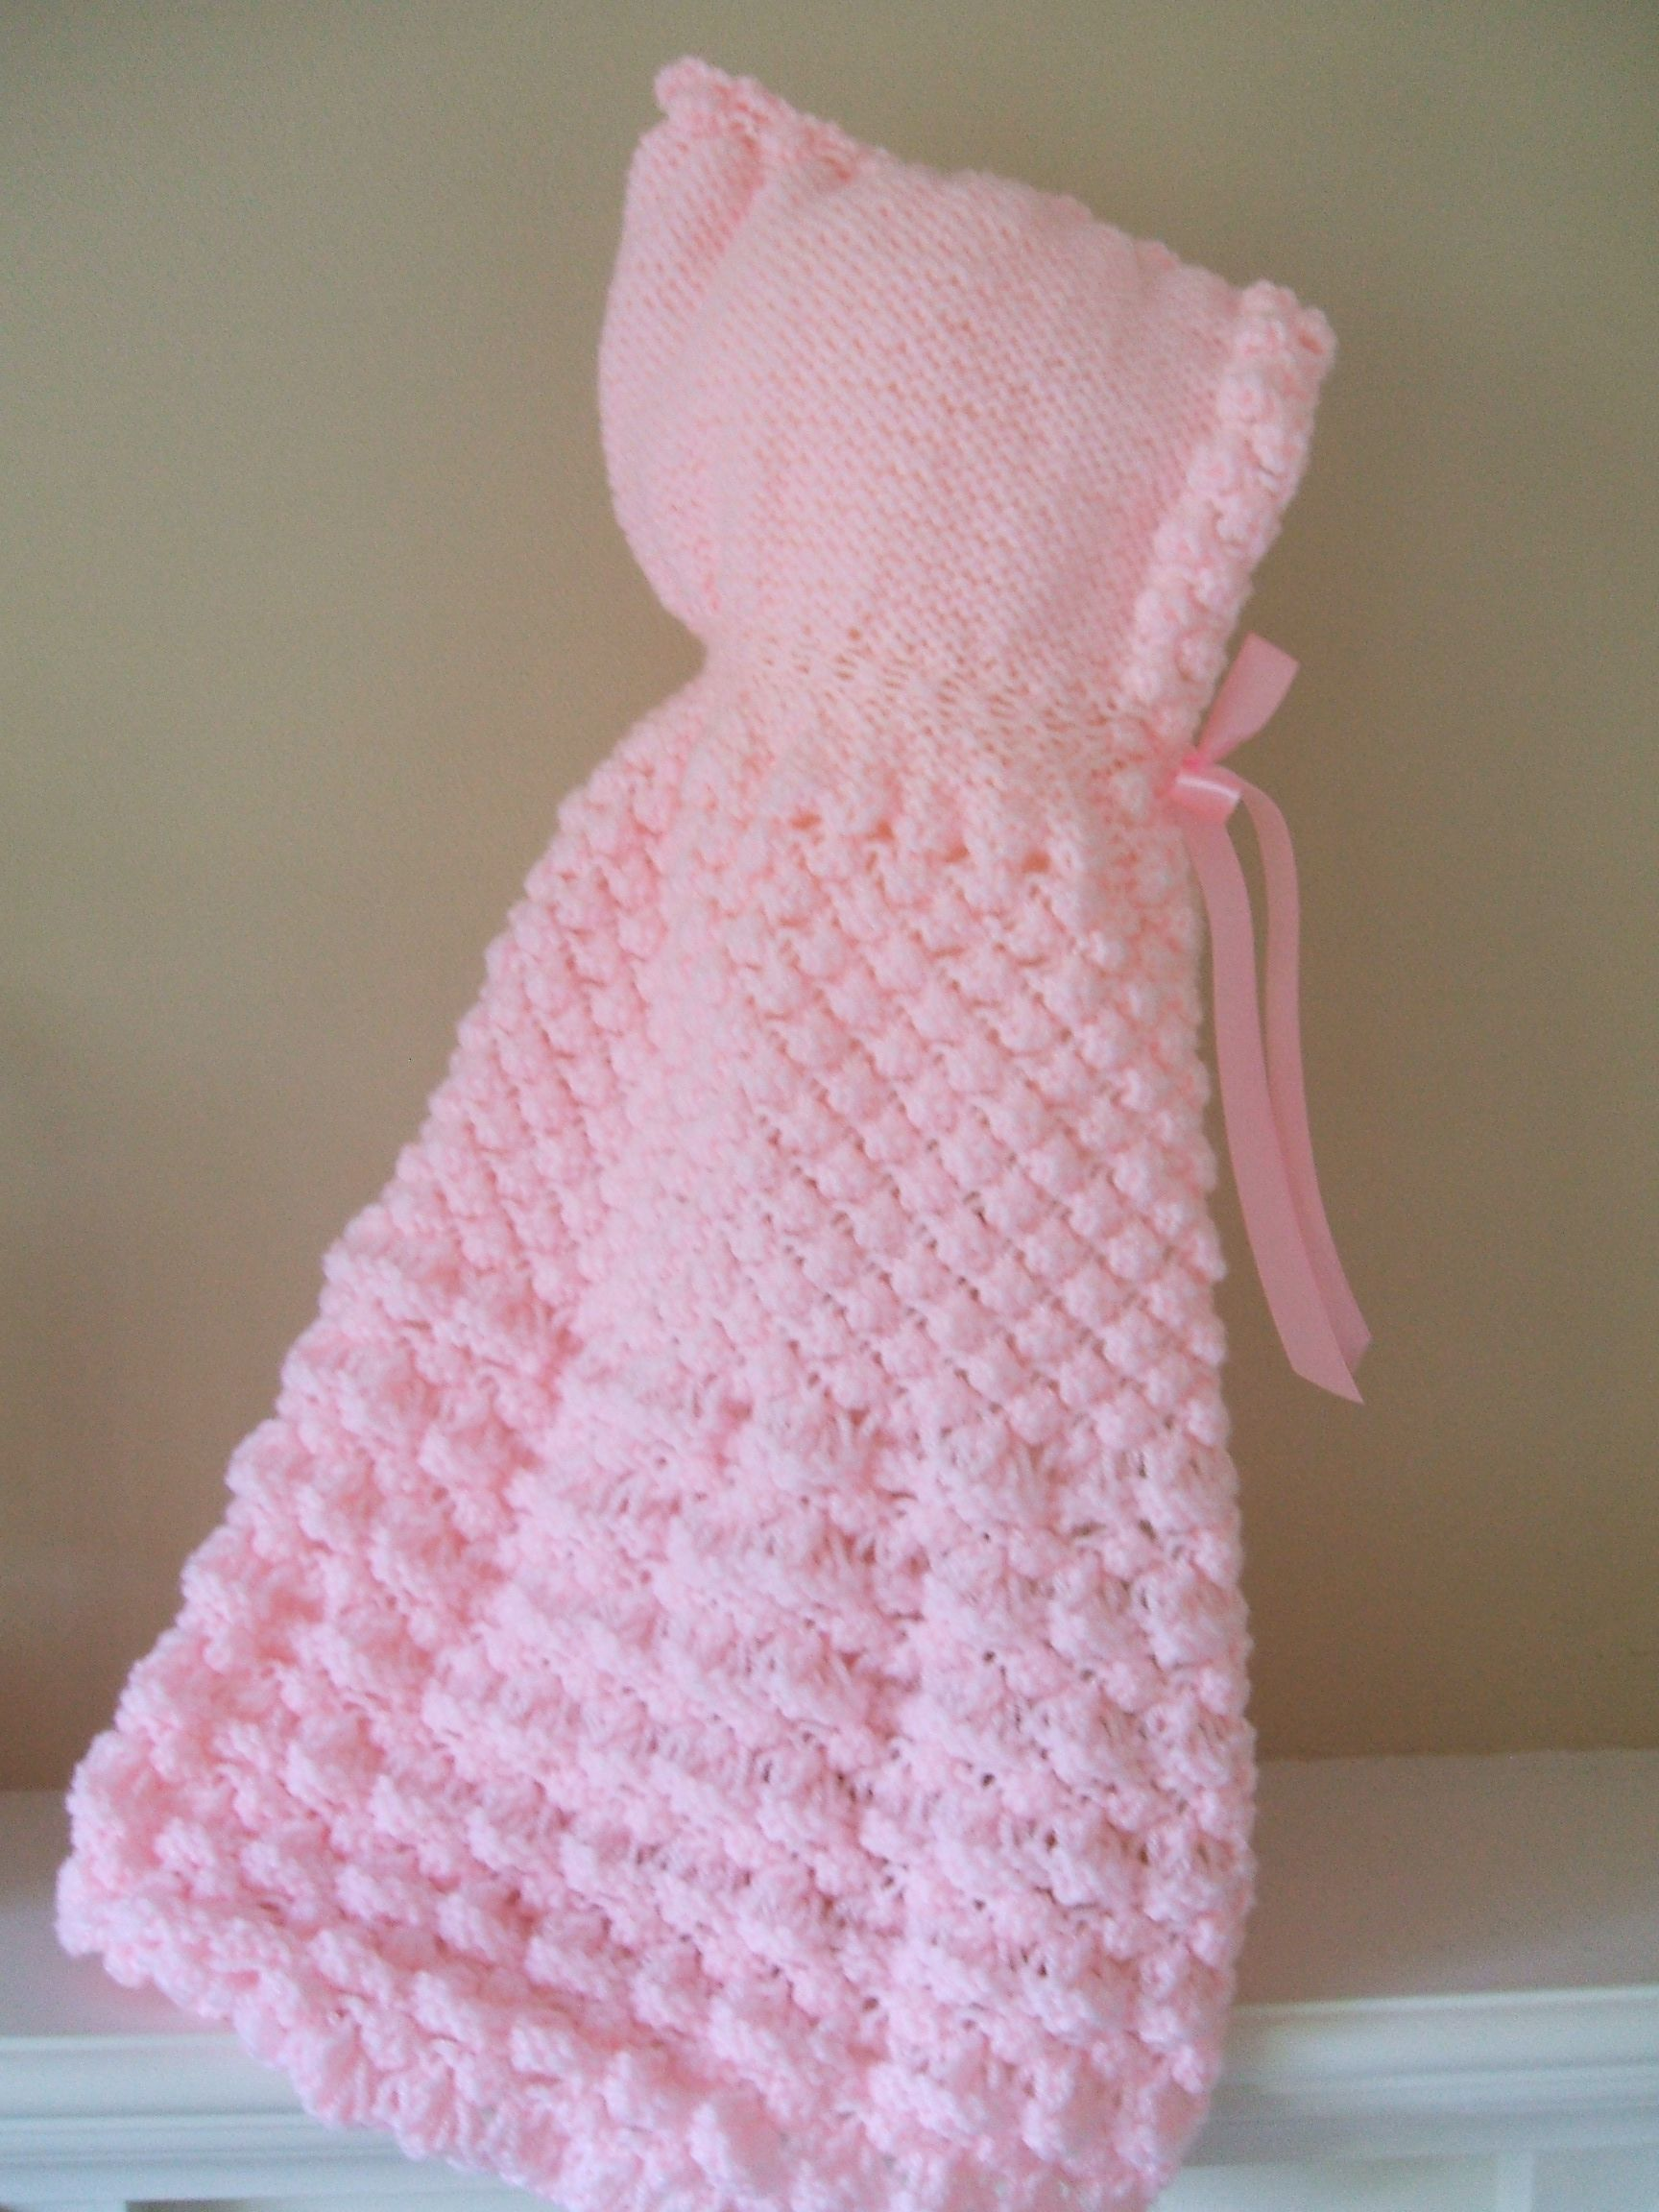 HOODED CAPE FOR NEW BABY knitting pattern http://www.craftsy.com/pattern/knit...